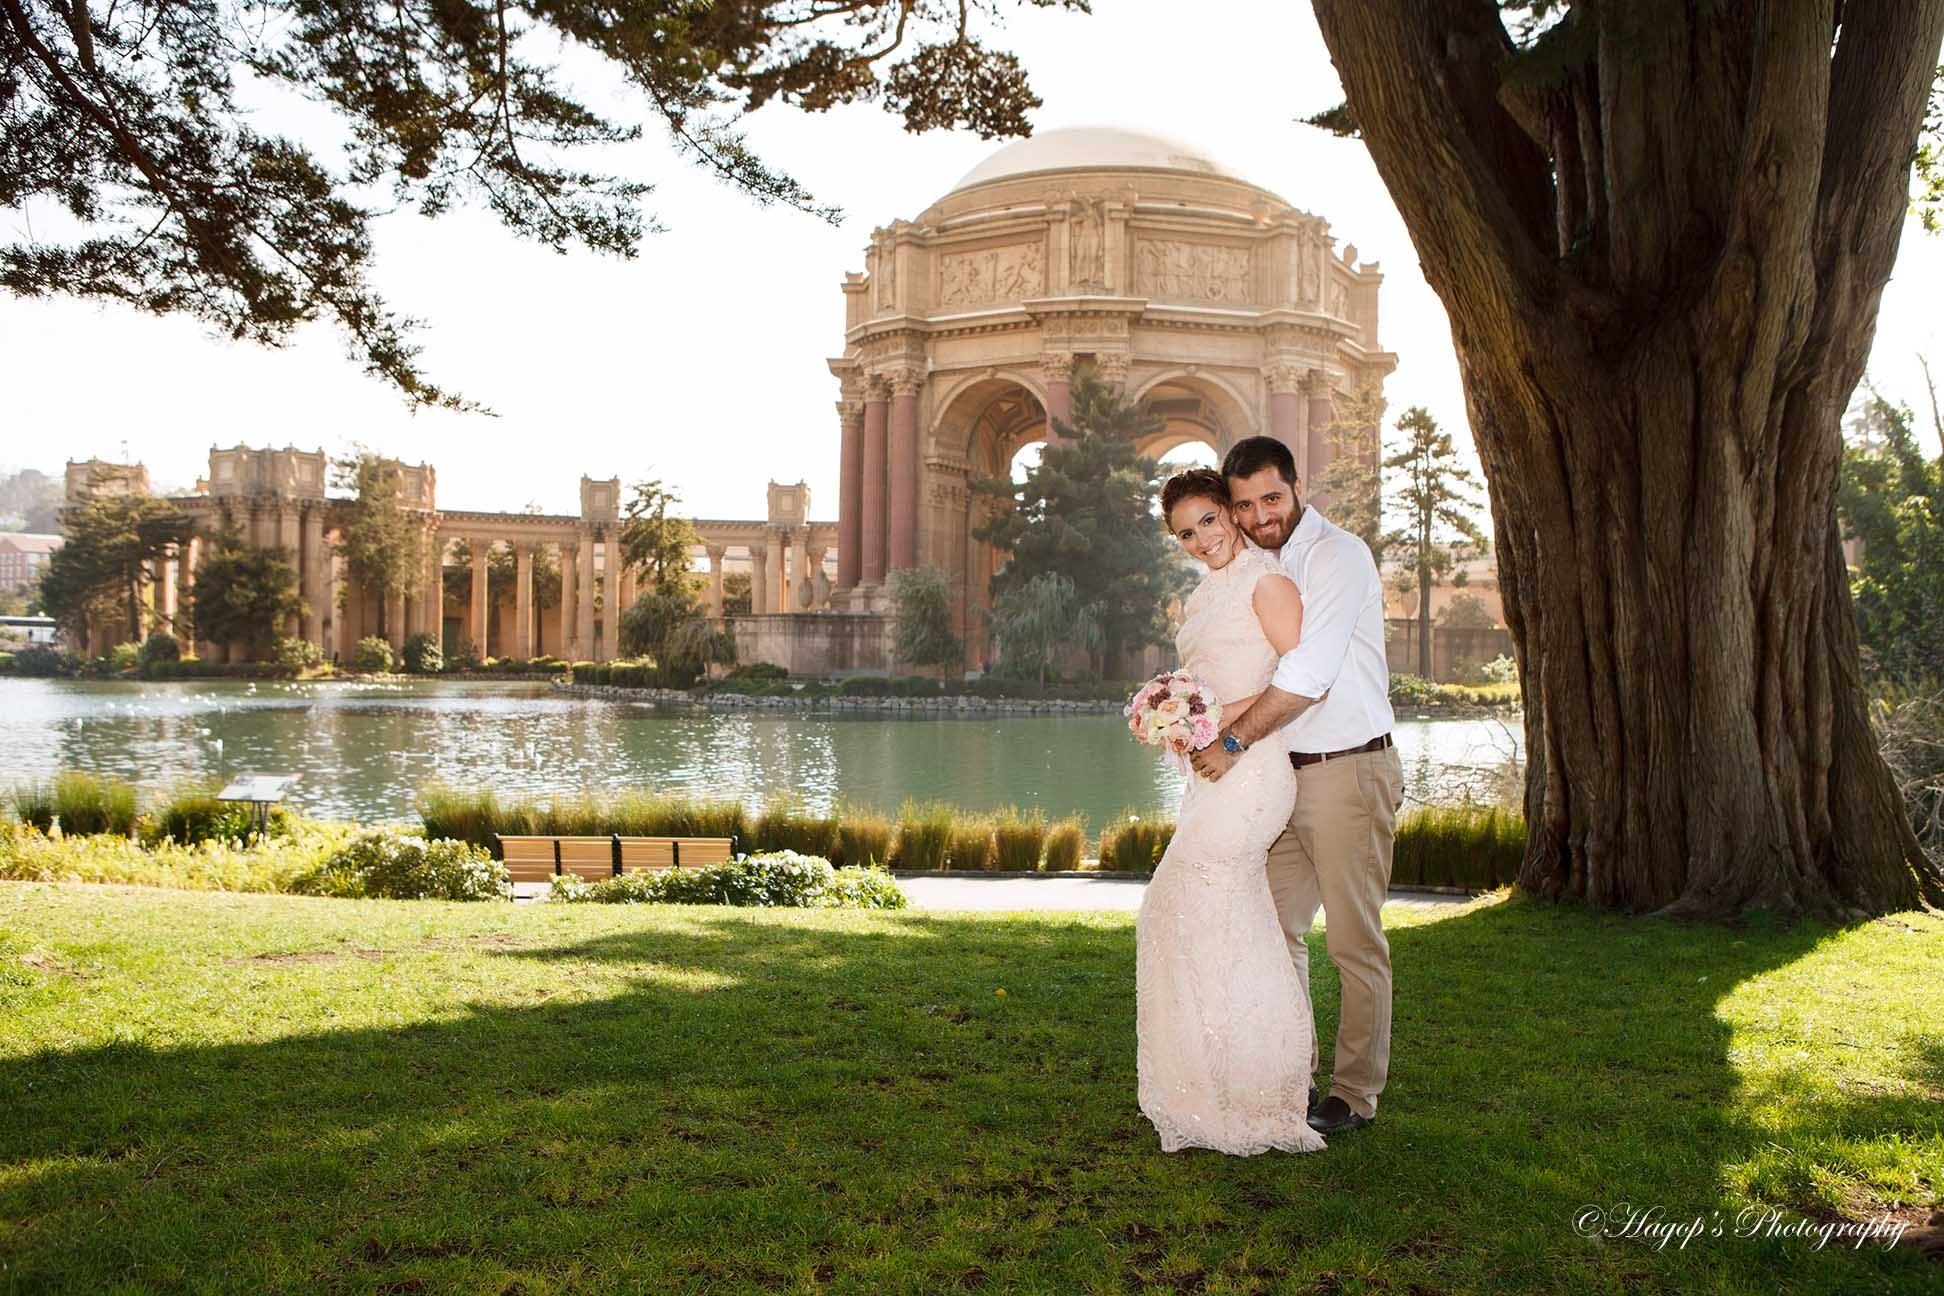 bride and groom portrait at the place of fine arts